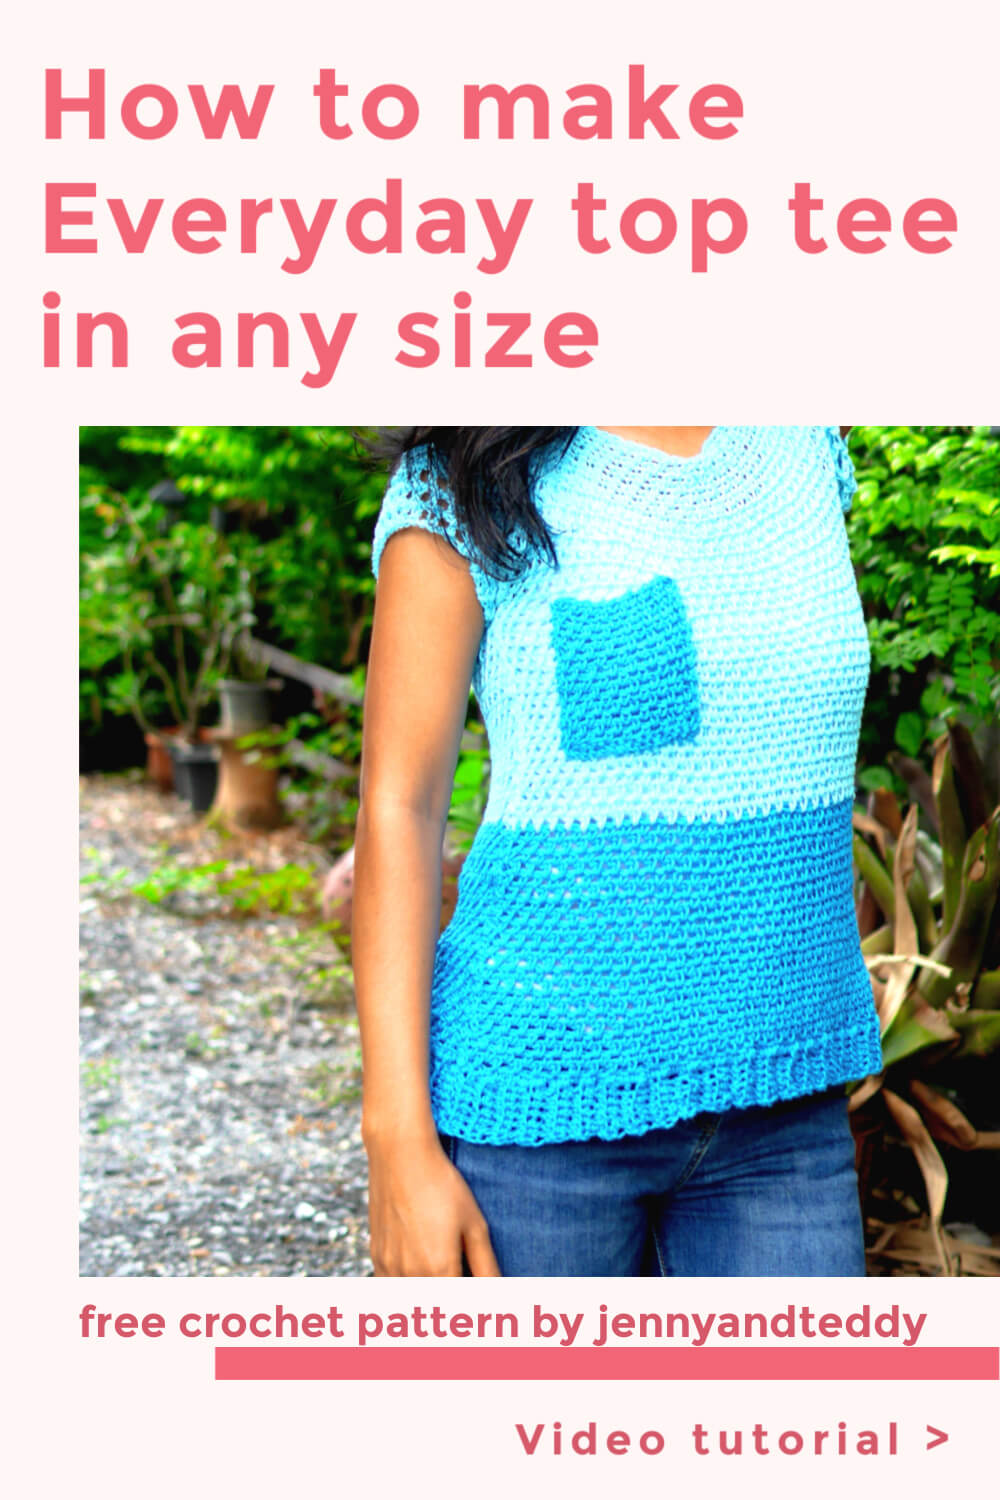 how to crochet everyday toptee in any size free crochet pattern